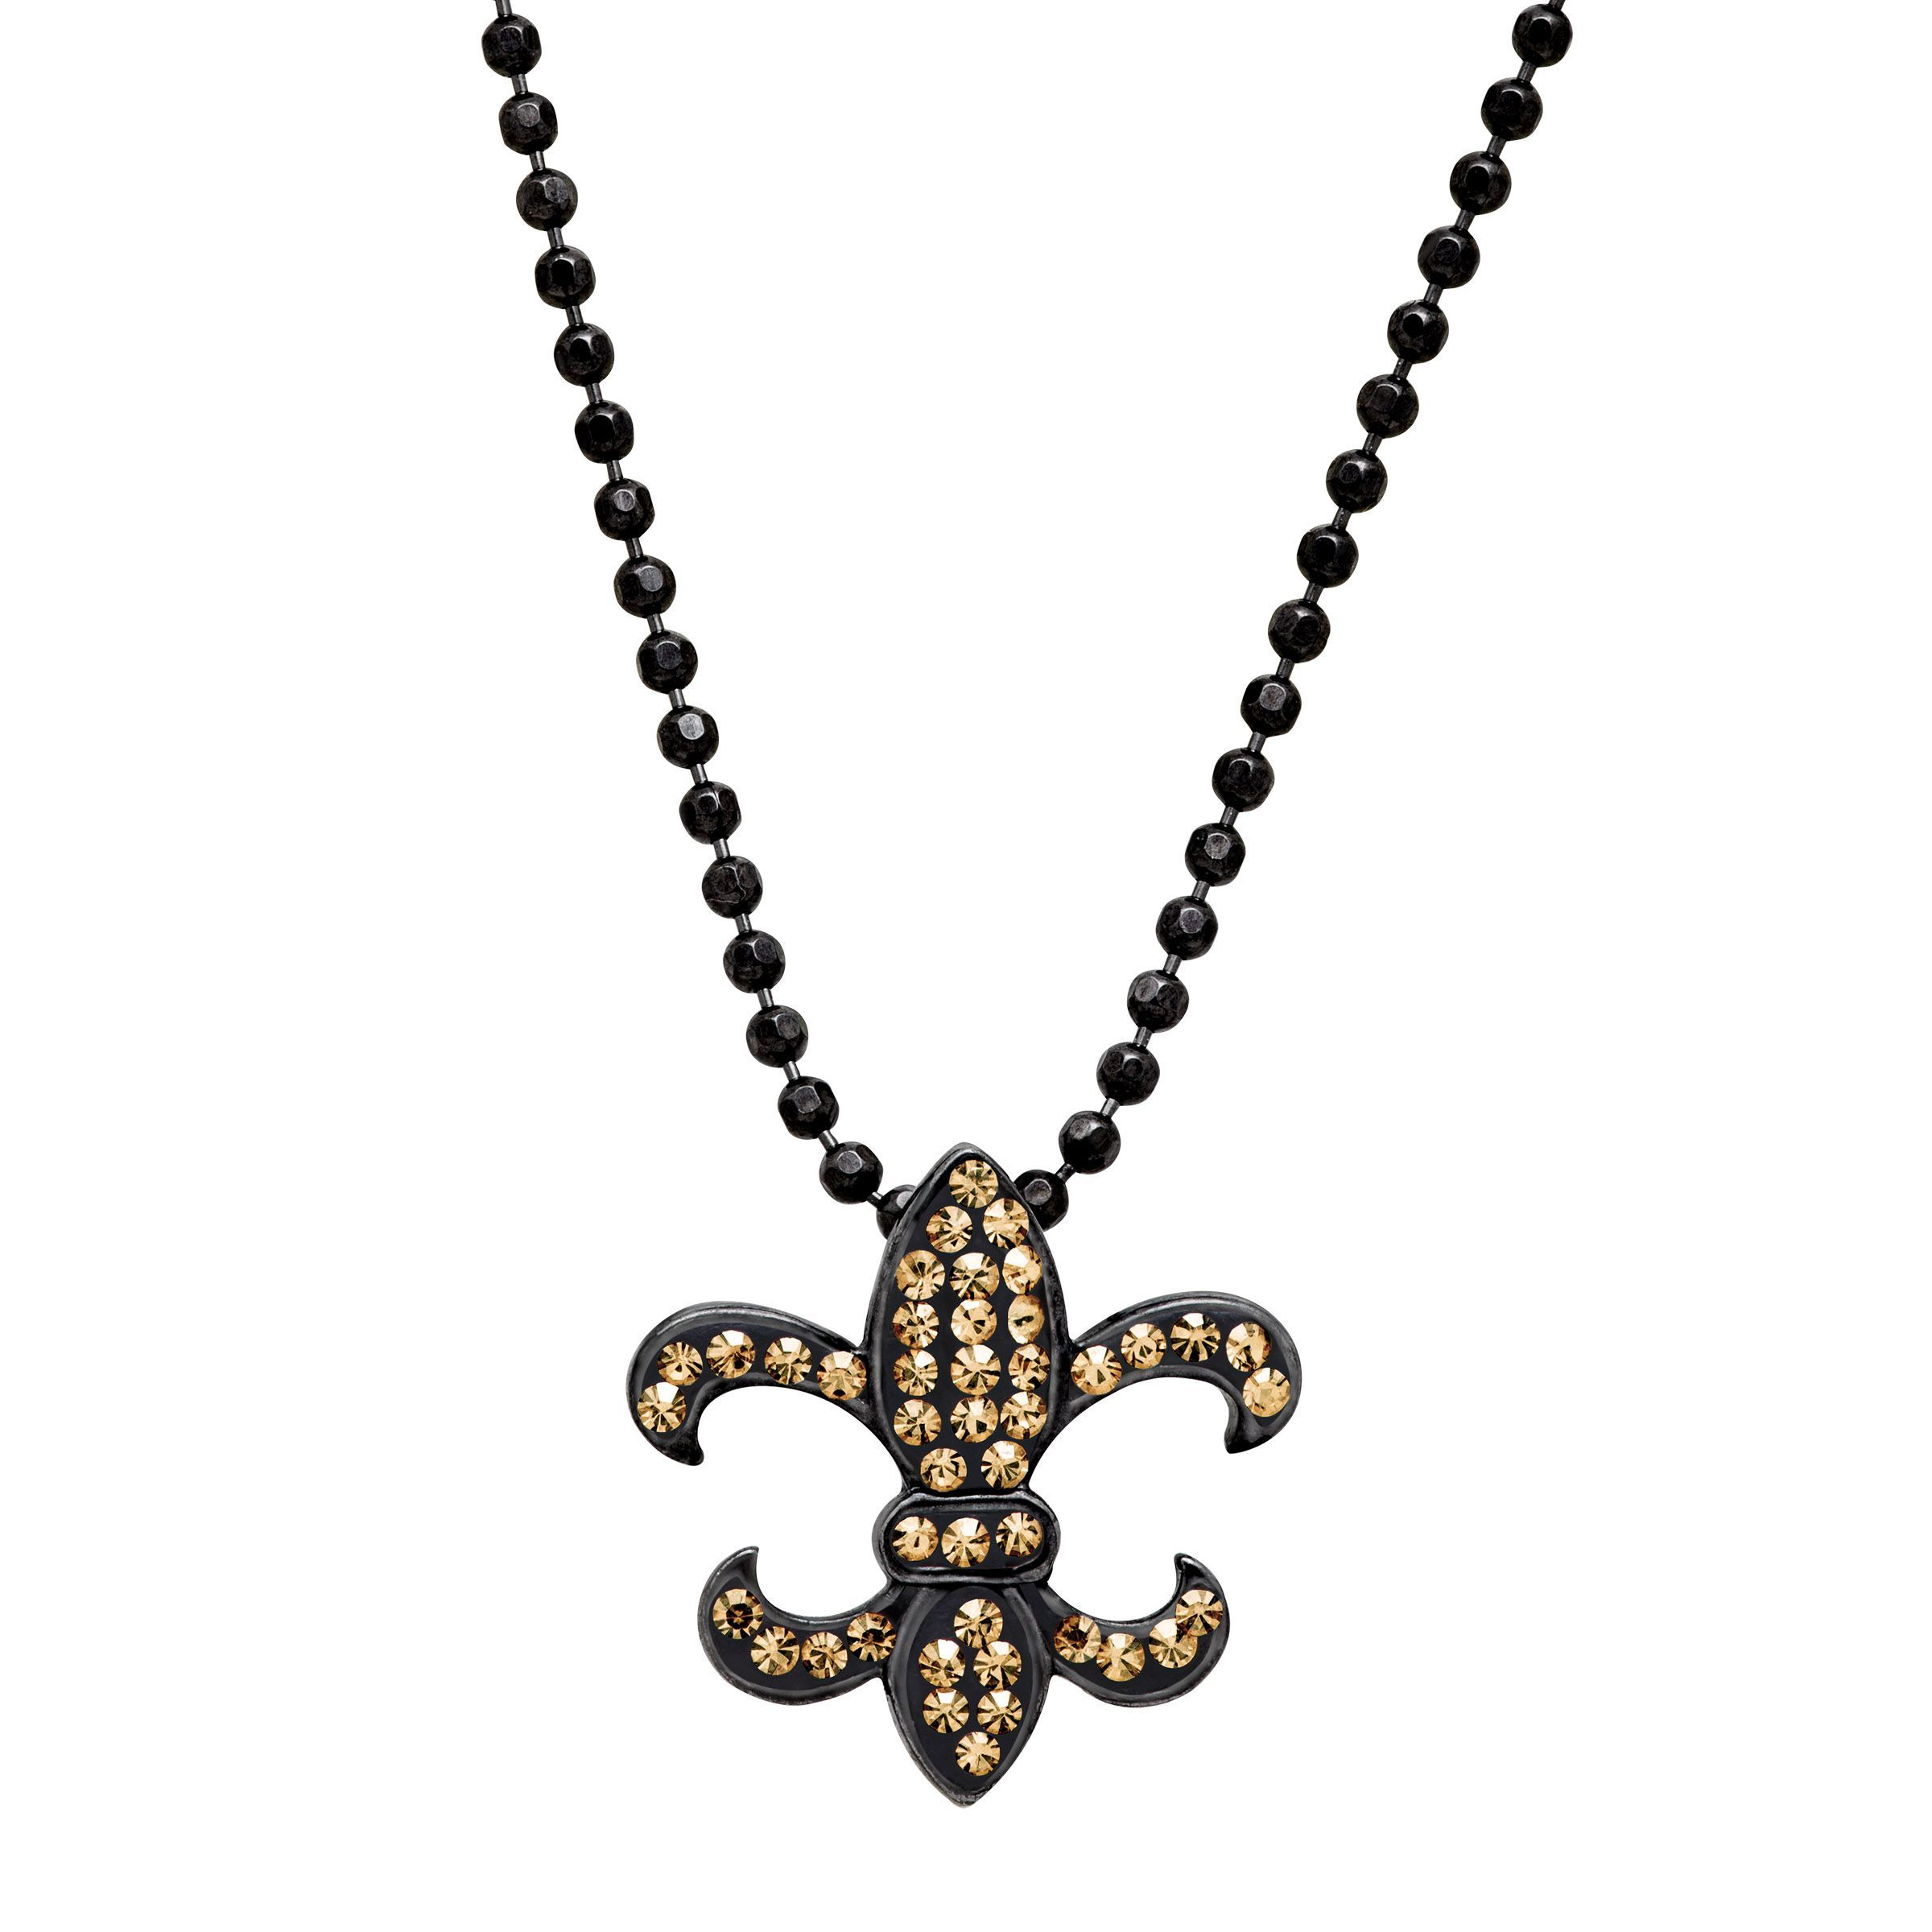 Crystaluxe Fleur-De-Lis Pendant Necklace with Swarovski Crystals in Black Rhodium-Plated Sterling Silver The Fleur-de-Lis, or  flower of the lily , has been used for centuries as a French symbol of royalty and perfection. Perfect for a princess in your life, this piece features round, golden Swarovski crystals on the face of the pendant in a setting of black rhodium over sterling silver. Piece measures 5/8 by 5/8 inches.     Comes with black rhodium over sterling silver 18-inch bead chain.